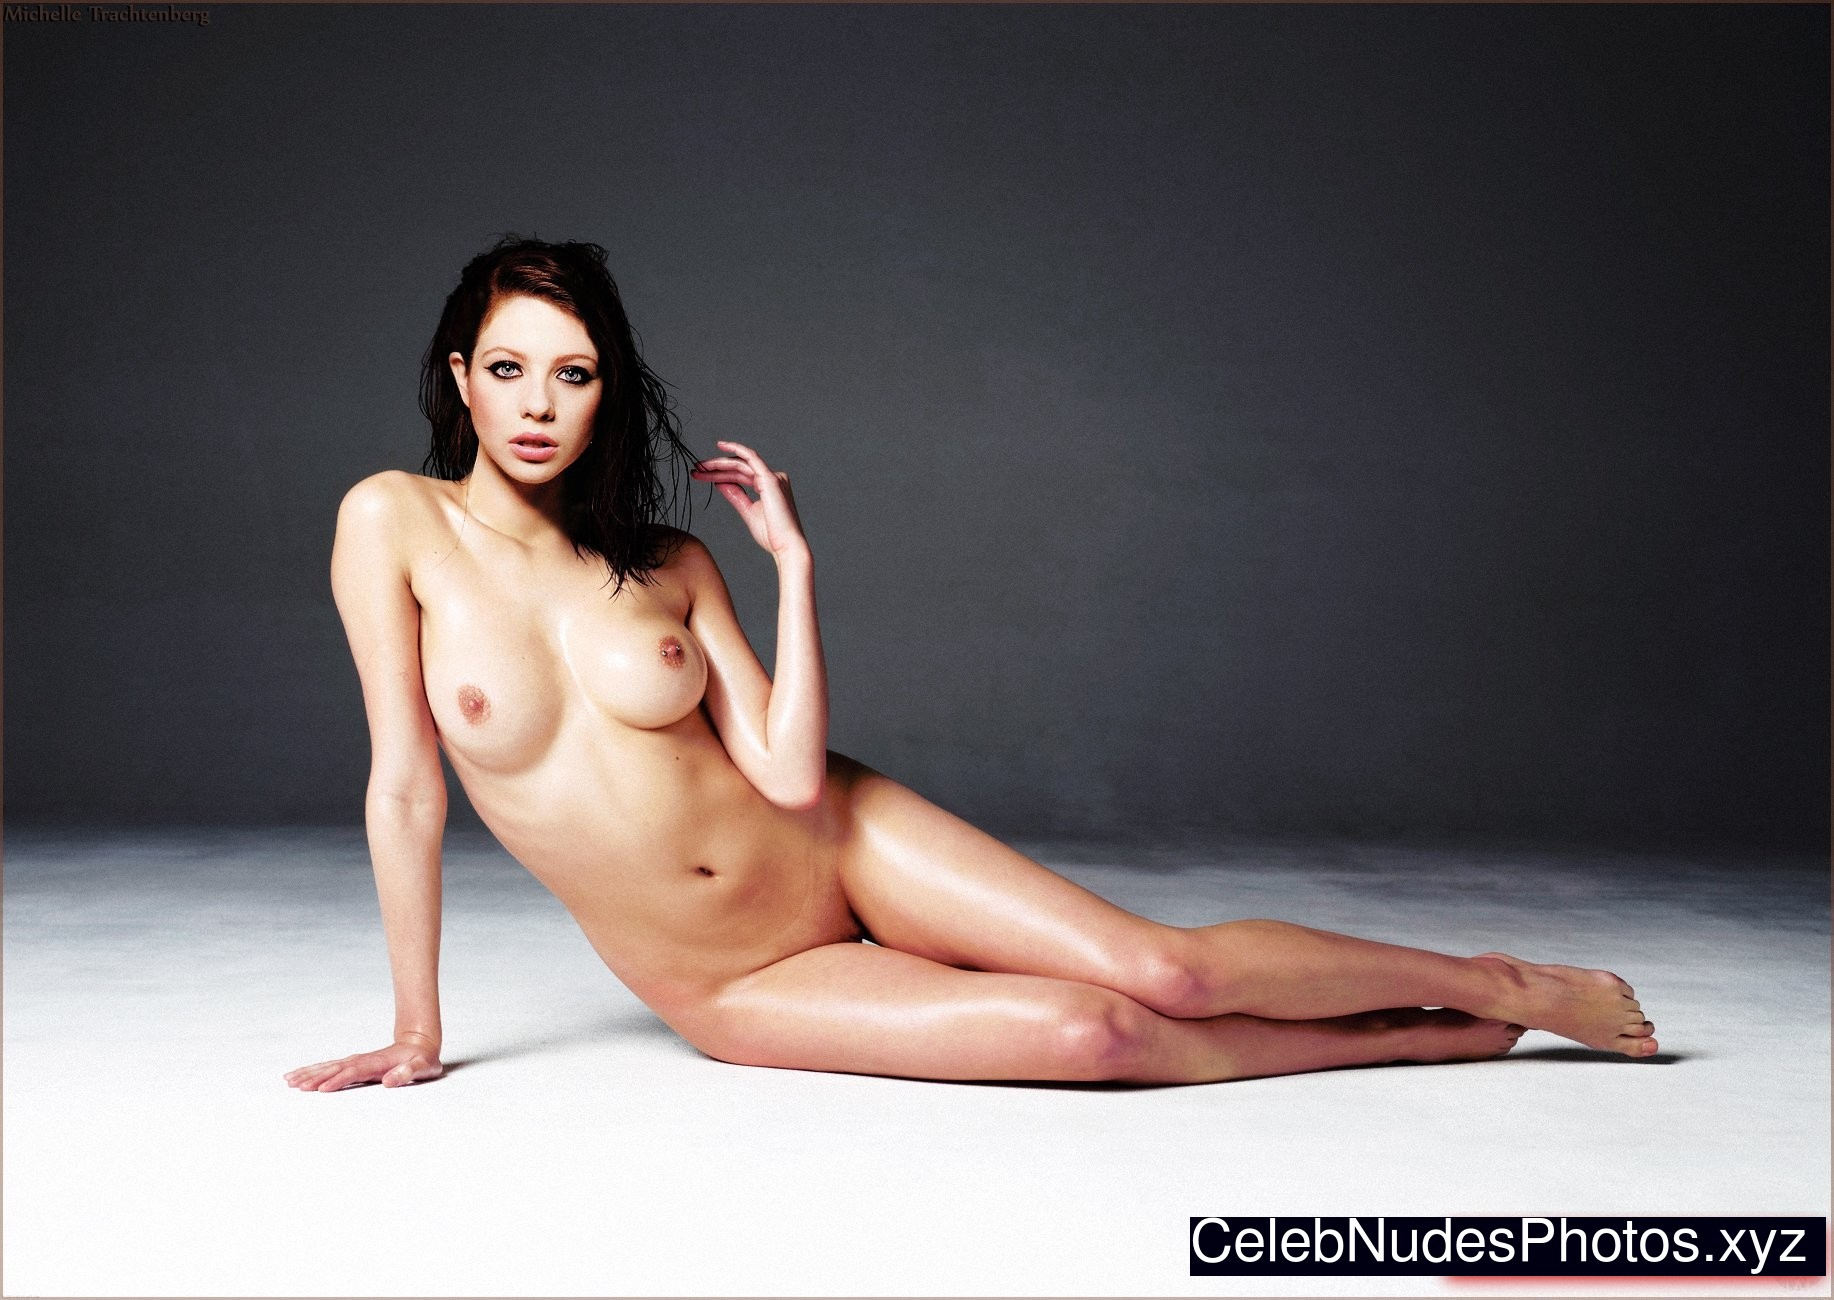 Michelle Trachtenberg naked celebrities